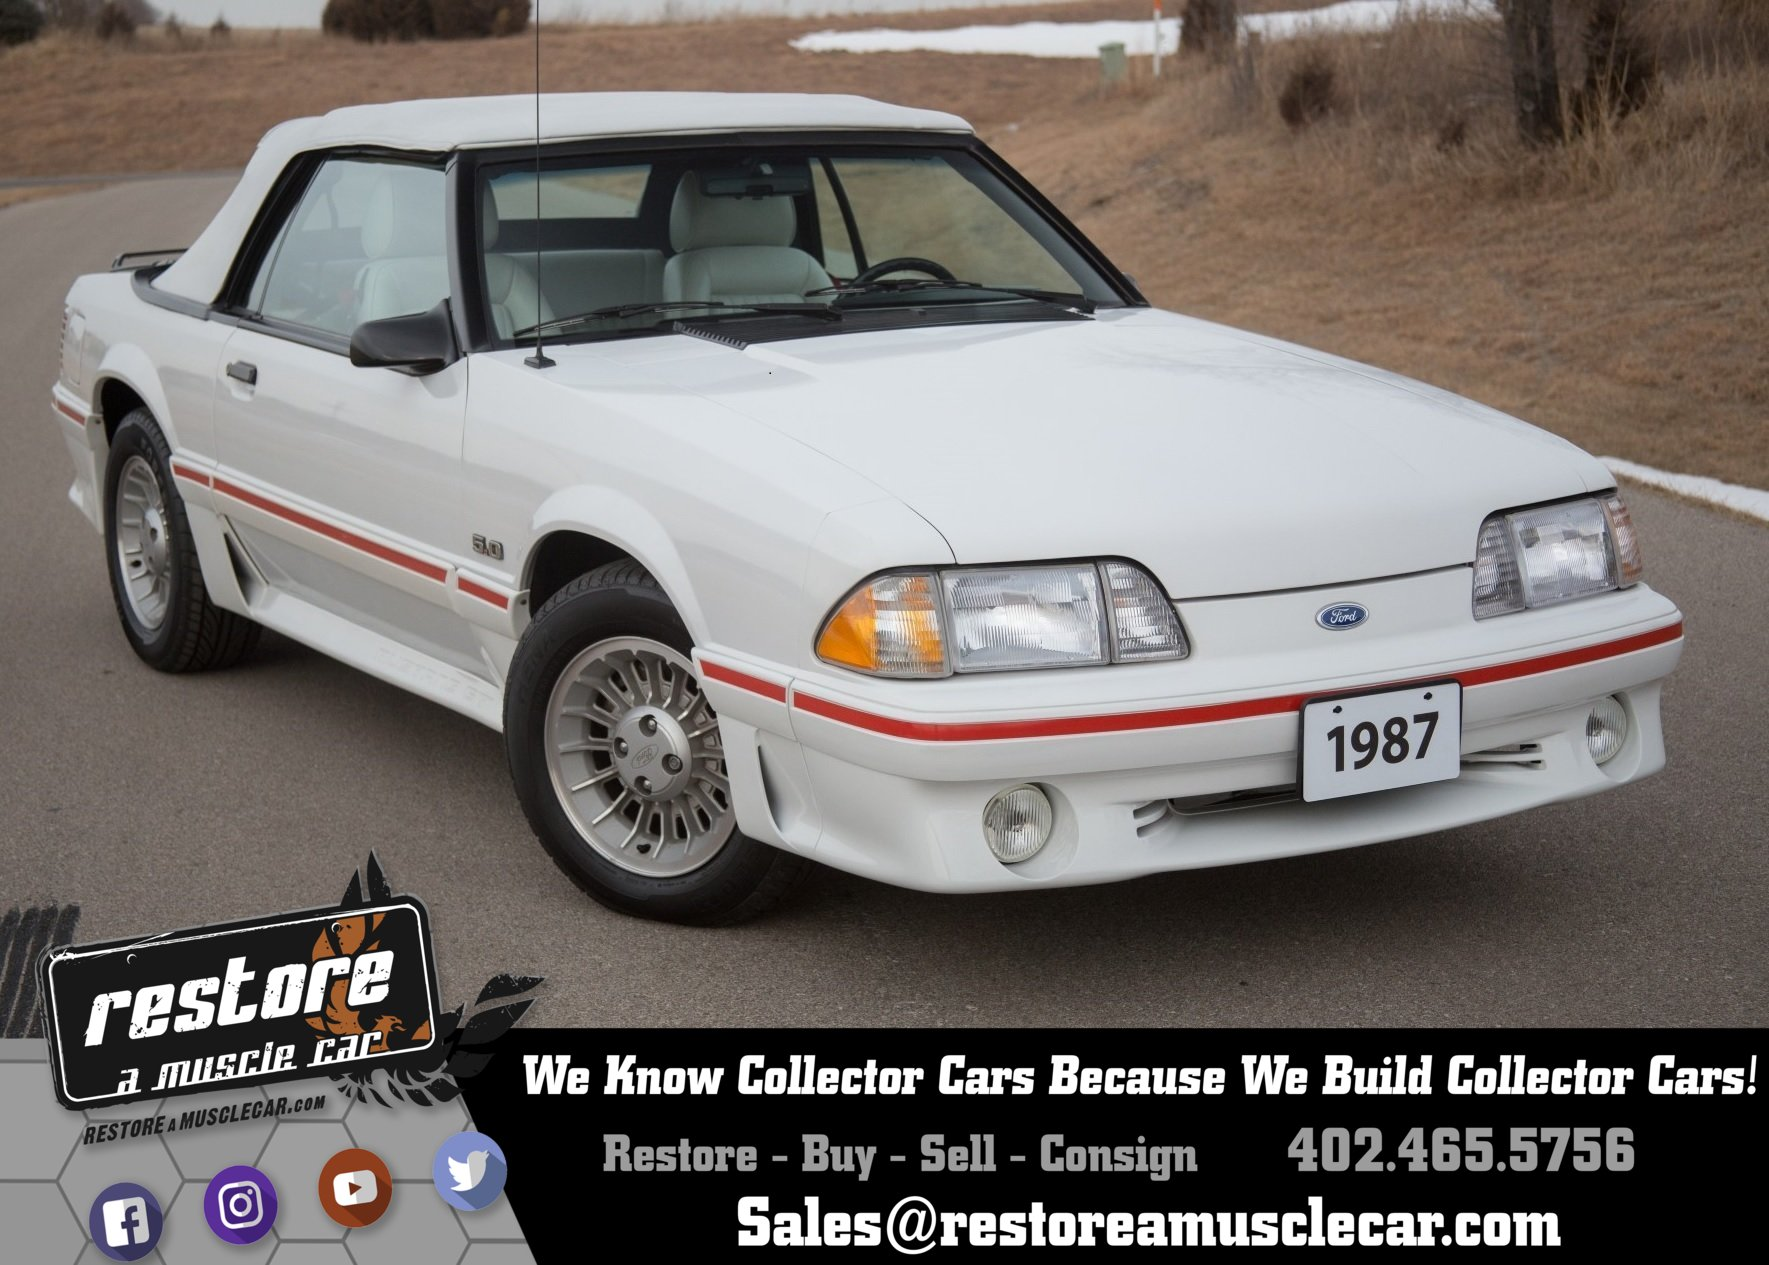 254000447c391 hd 1987 ford mustang